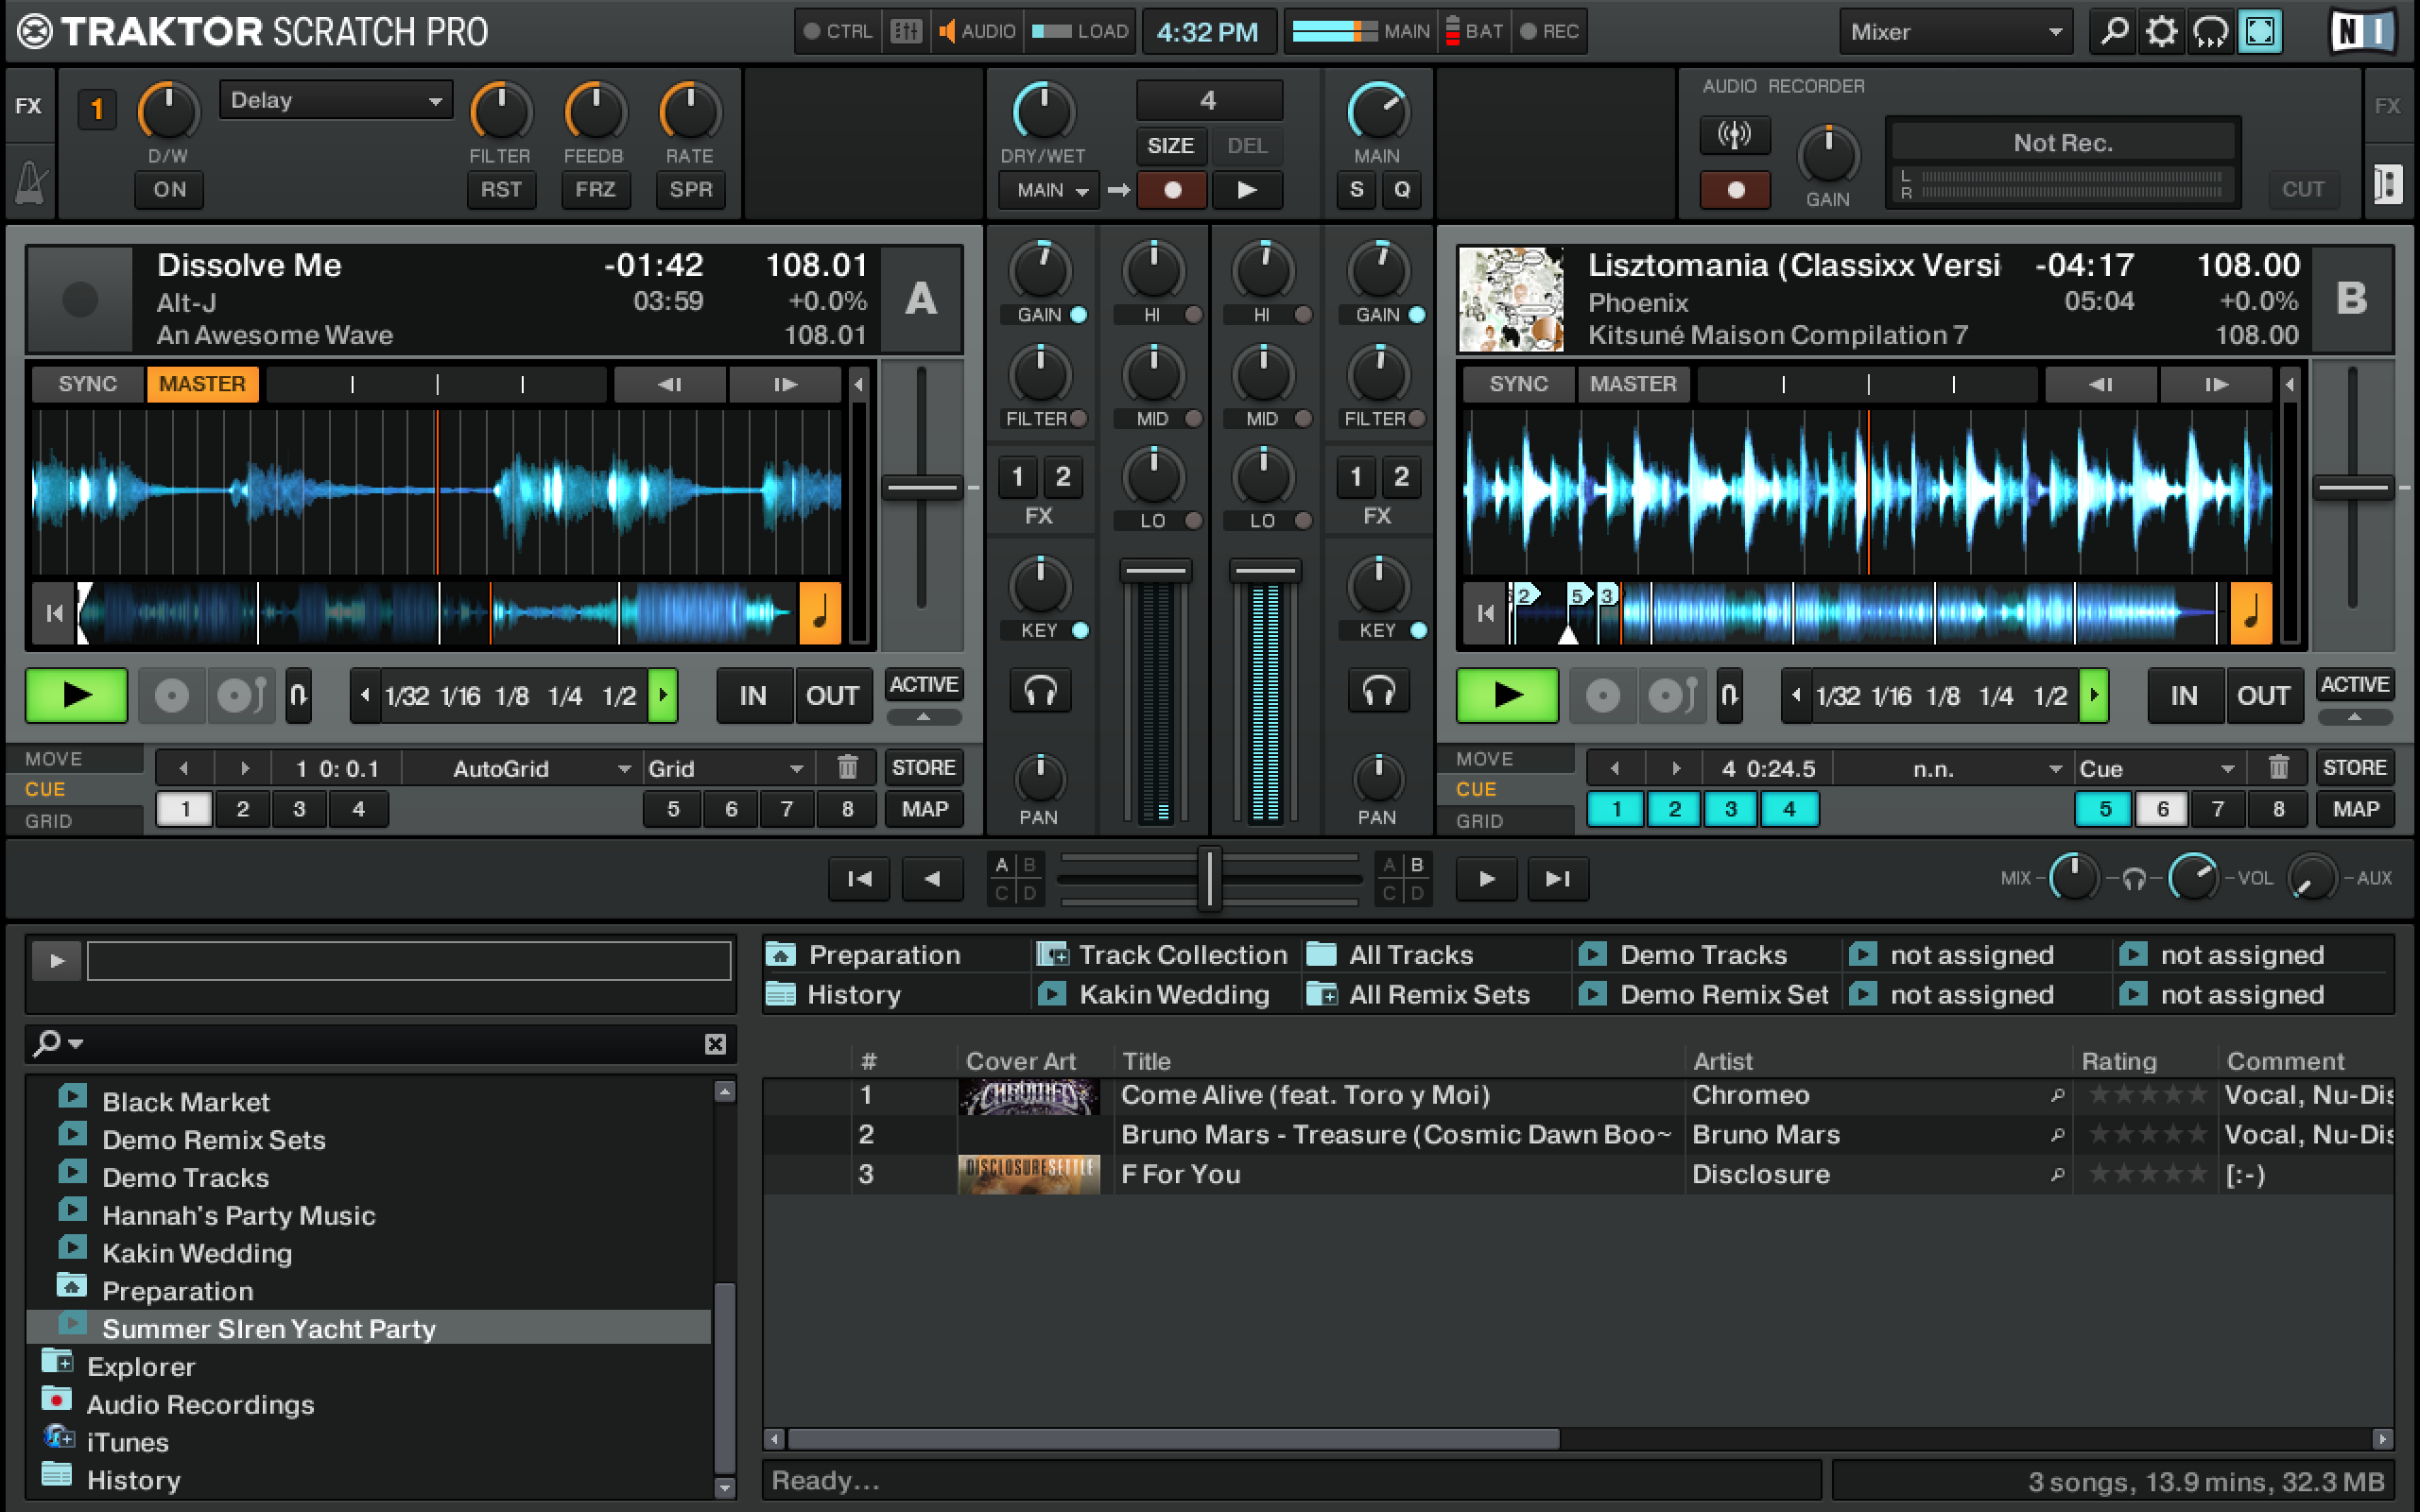 Are you a long-time Serato user thinking about switch to Traktor or using it alongside Serato? We list 10 things it's good to know when using Traktor for the first time.